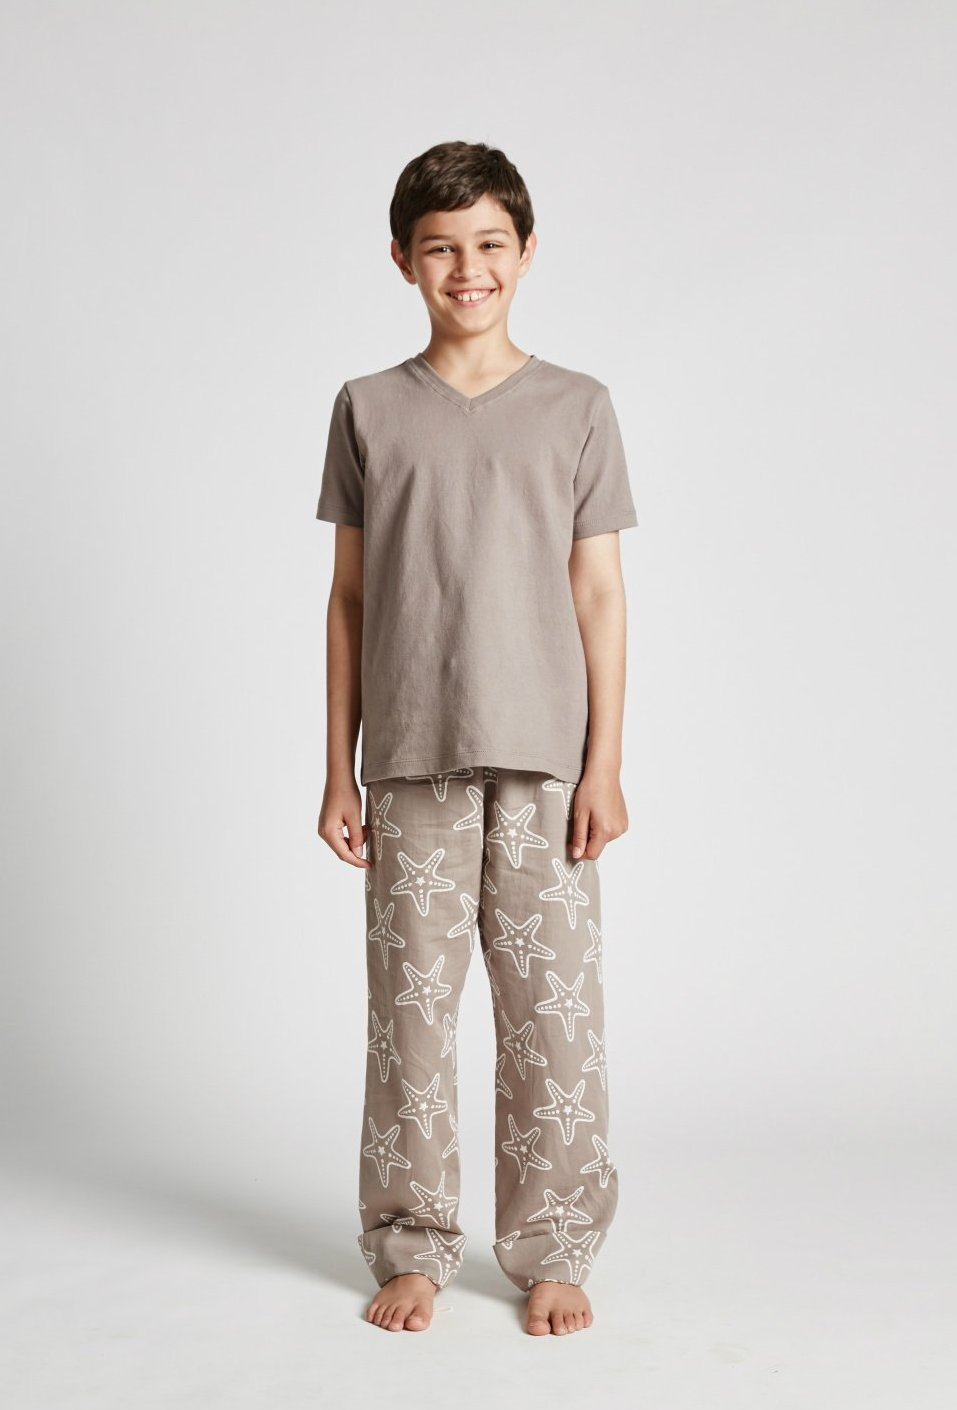 Starfish - Kids Unisex Pyjamas - Organic Cotton Tee and Pants